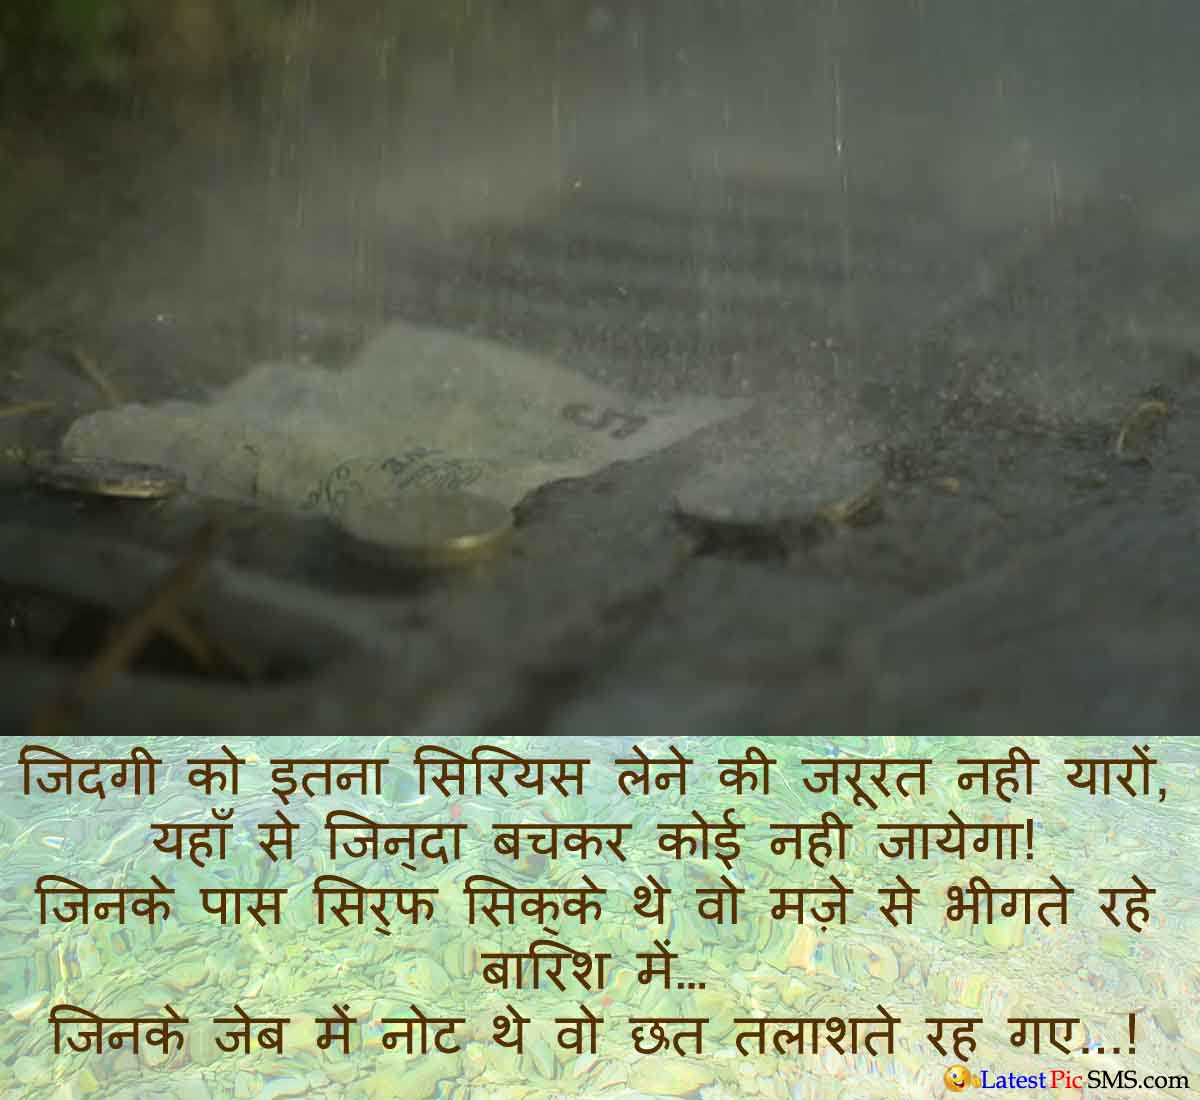 Coins and notes in rain best lines